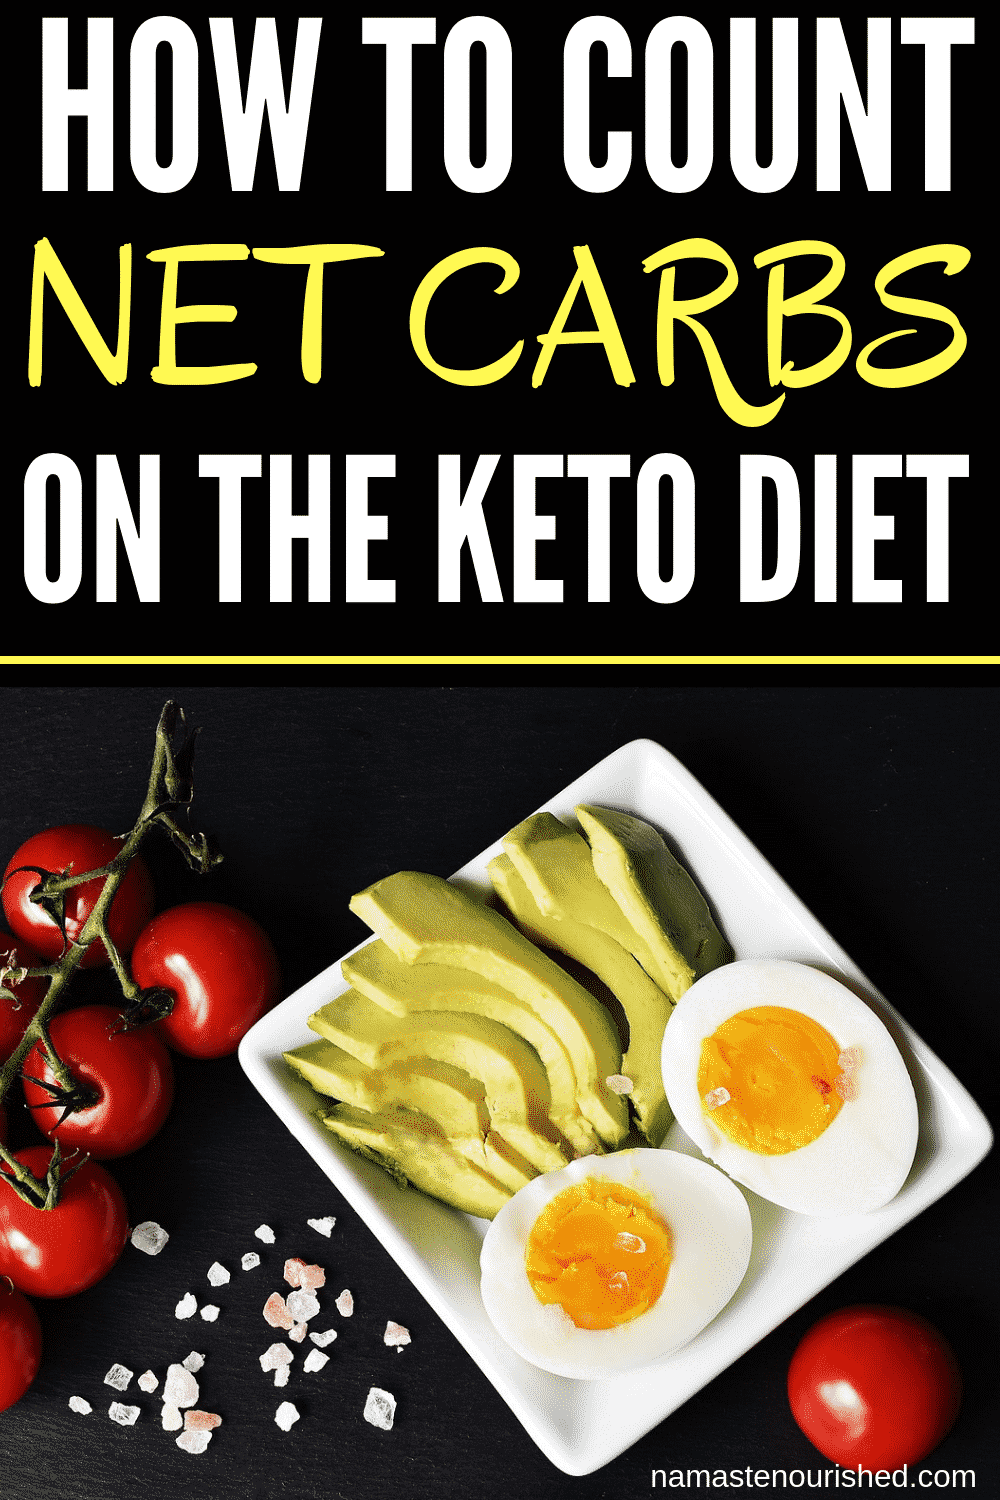 How to count net carbs on the keto diet